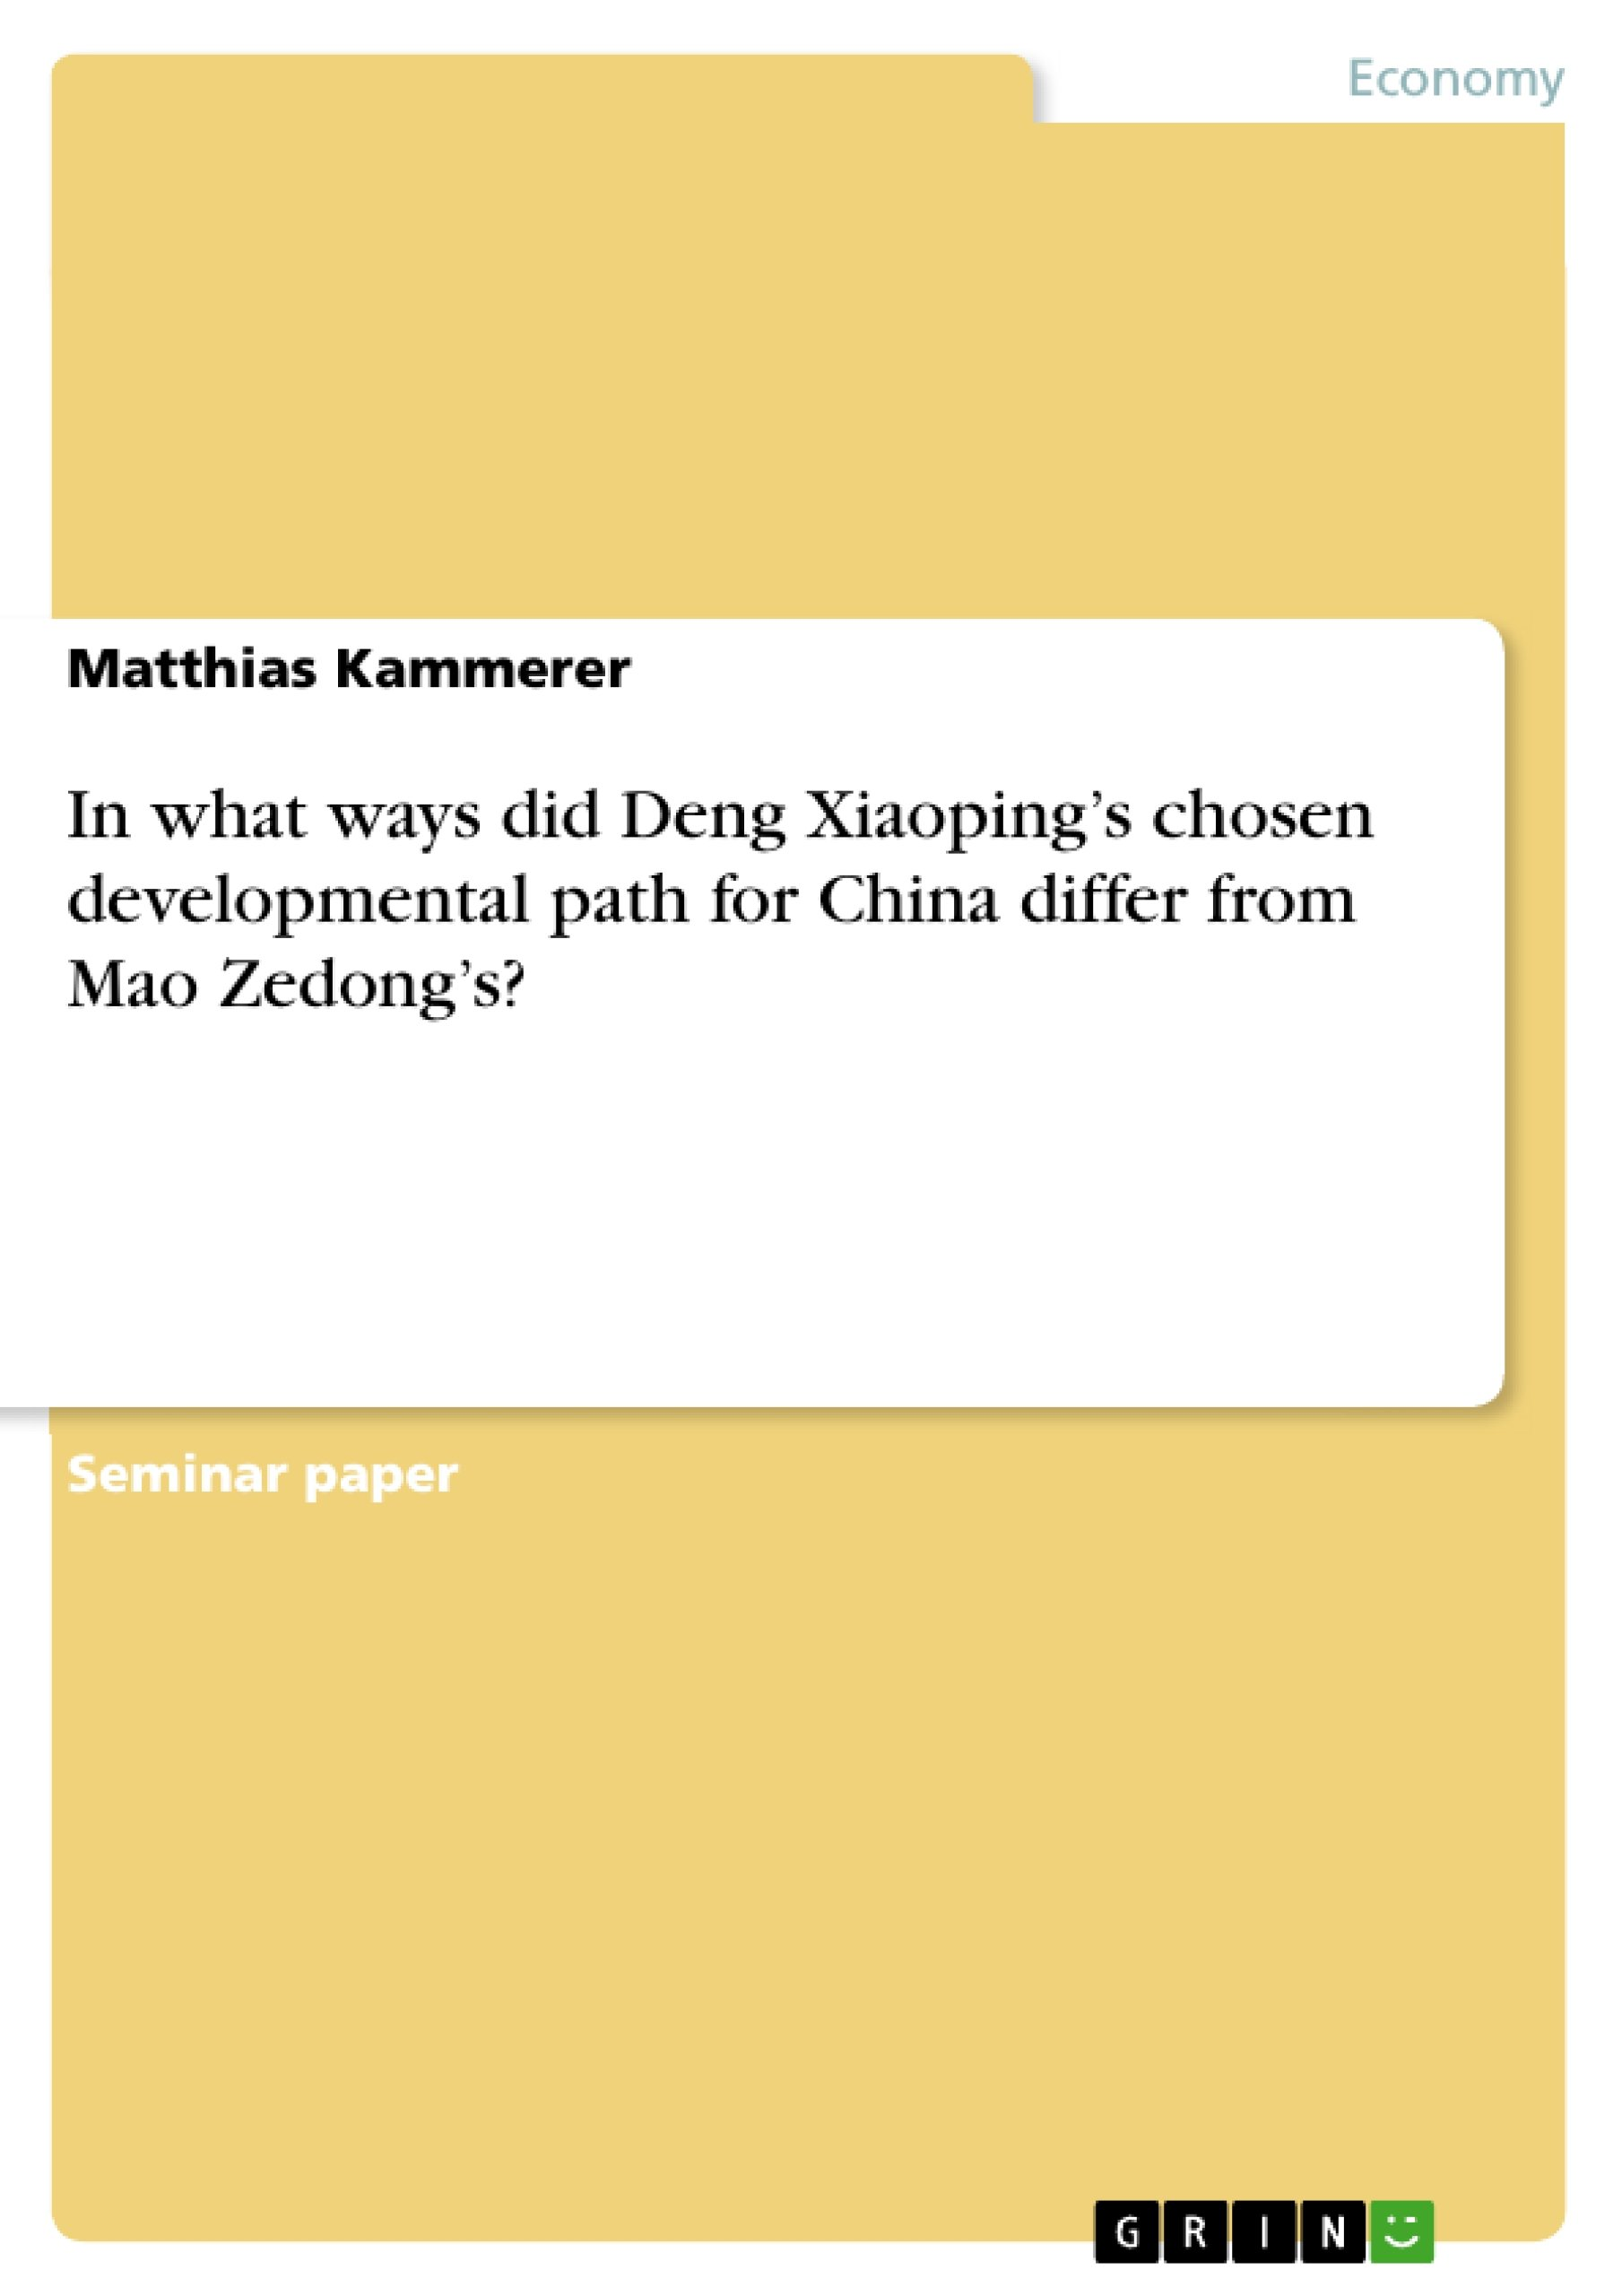 In what ways did Deng Xiaoping's chosen developmental path for China differ from Mao Zedong's?